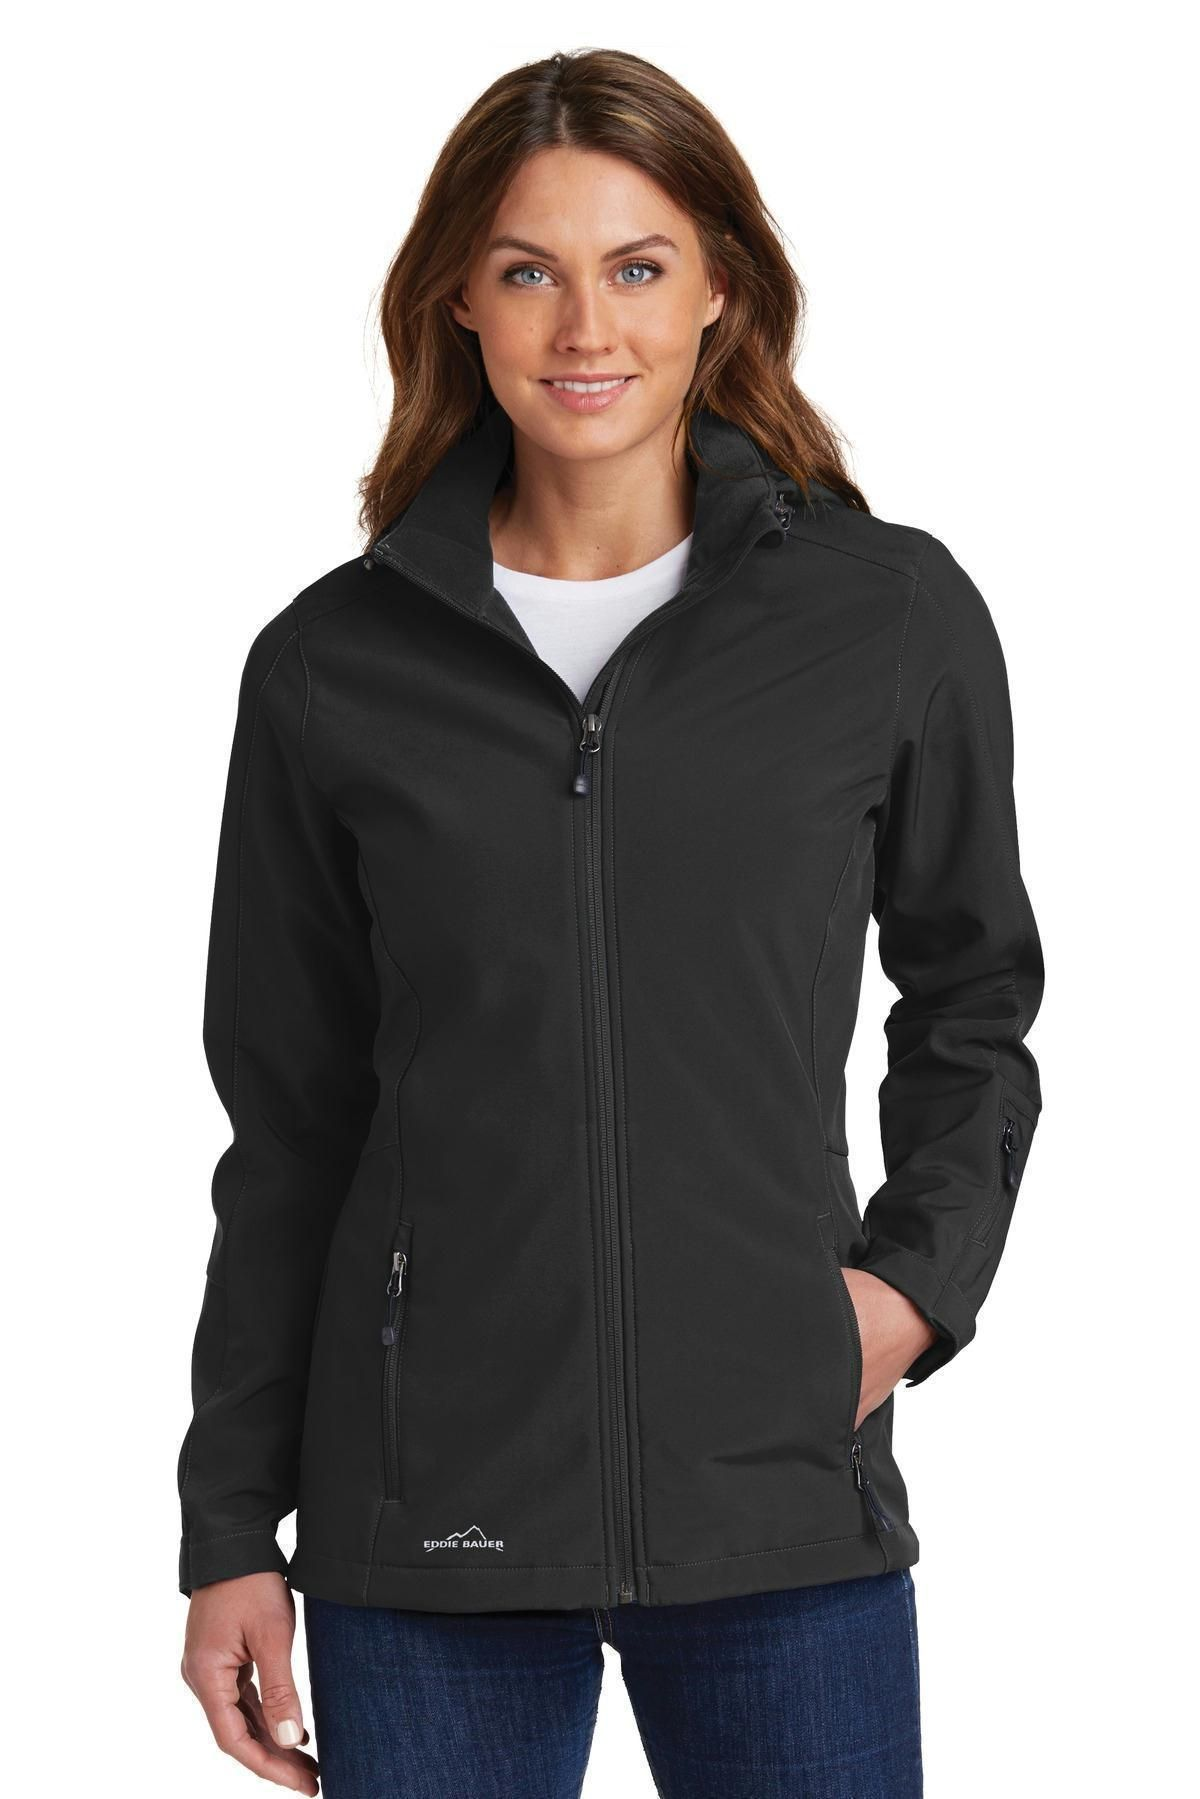 Eddie Bauer Ladies Hooded Soft Shell Parka. EB537 Admiral